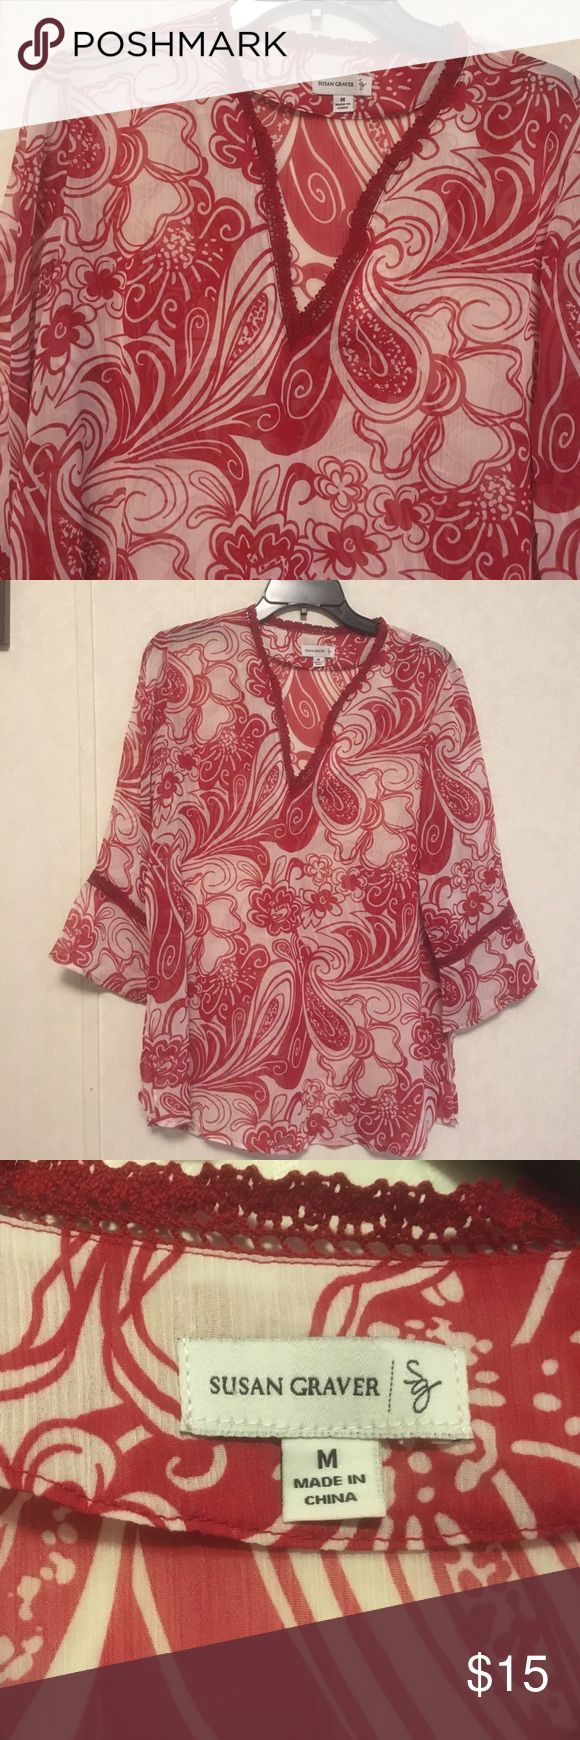 Susan Graver Ladies Top Sheer Top with bell sleeves. Never worn. Like new condition Susan Graver Tops Tunics